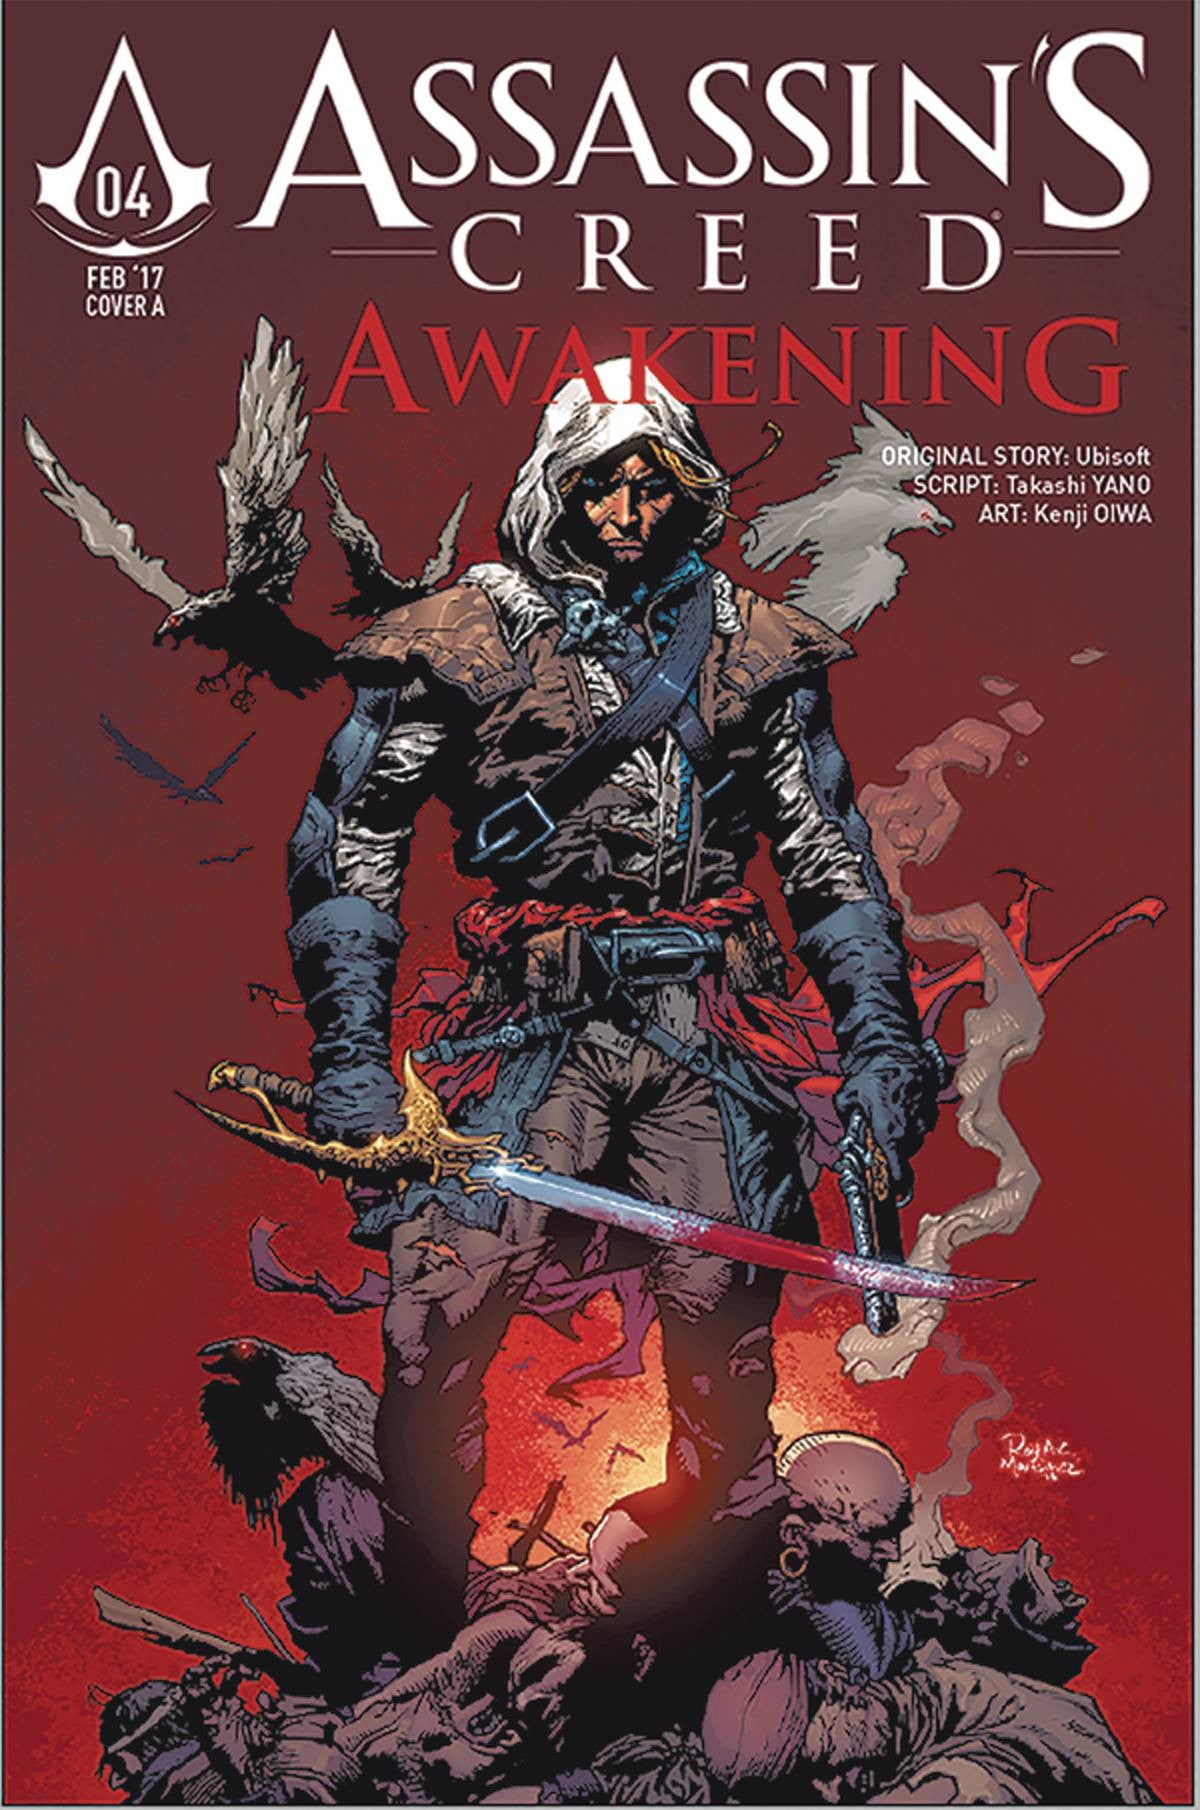 ASSASSINS CREED AWAKENING #5 (OF 6) CVR B MARTINEZ